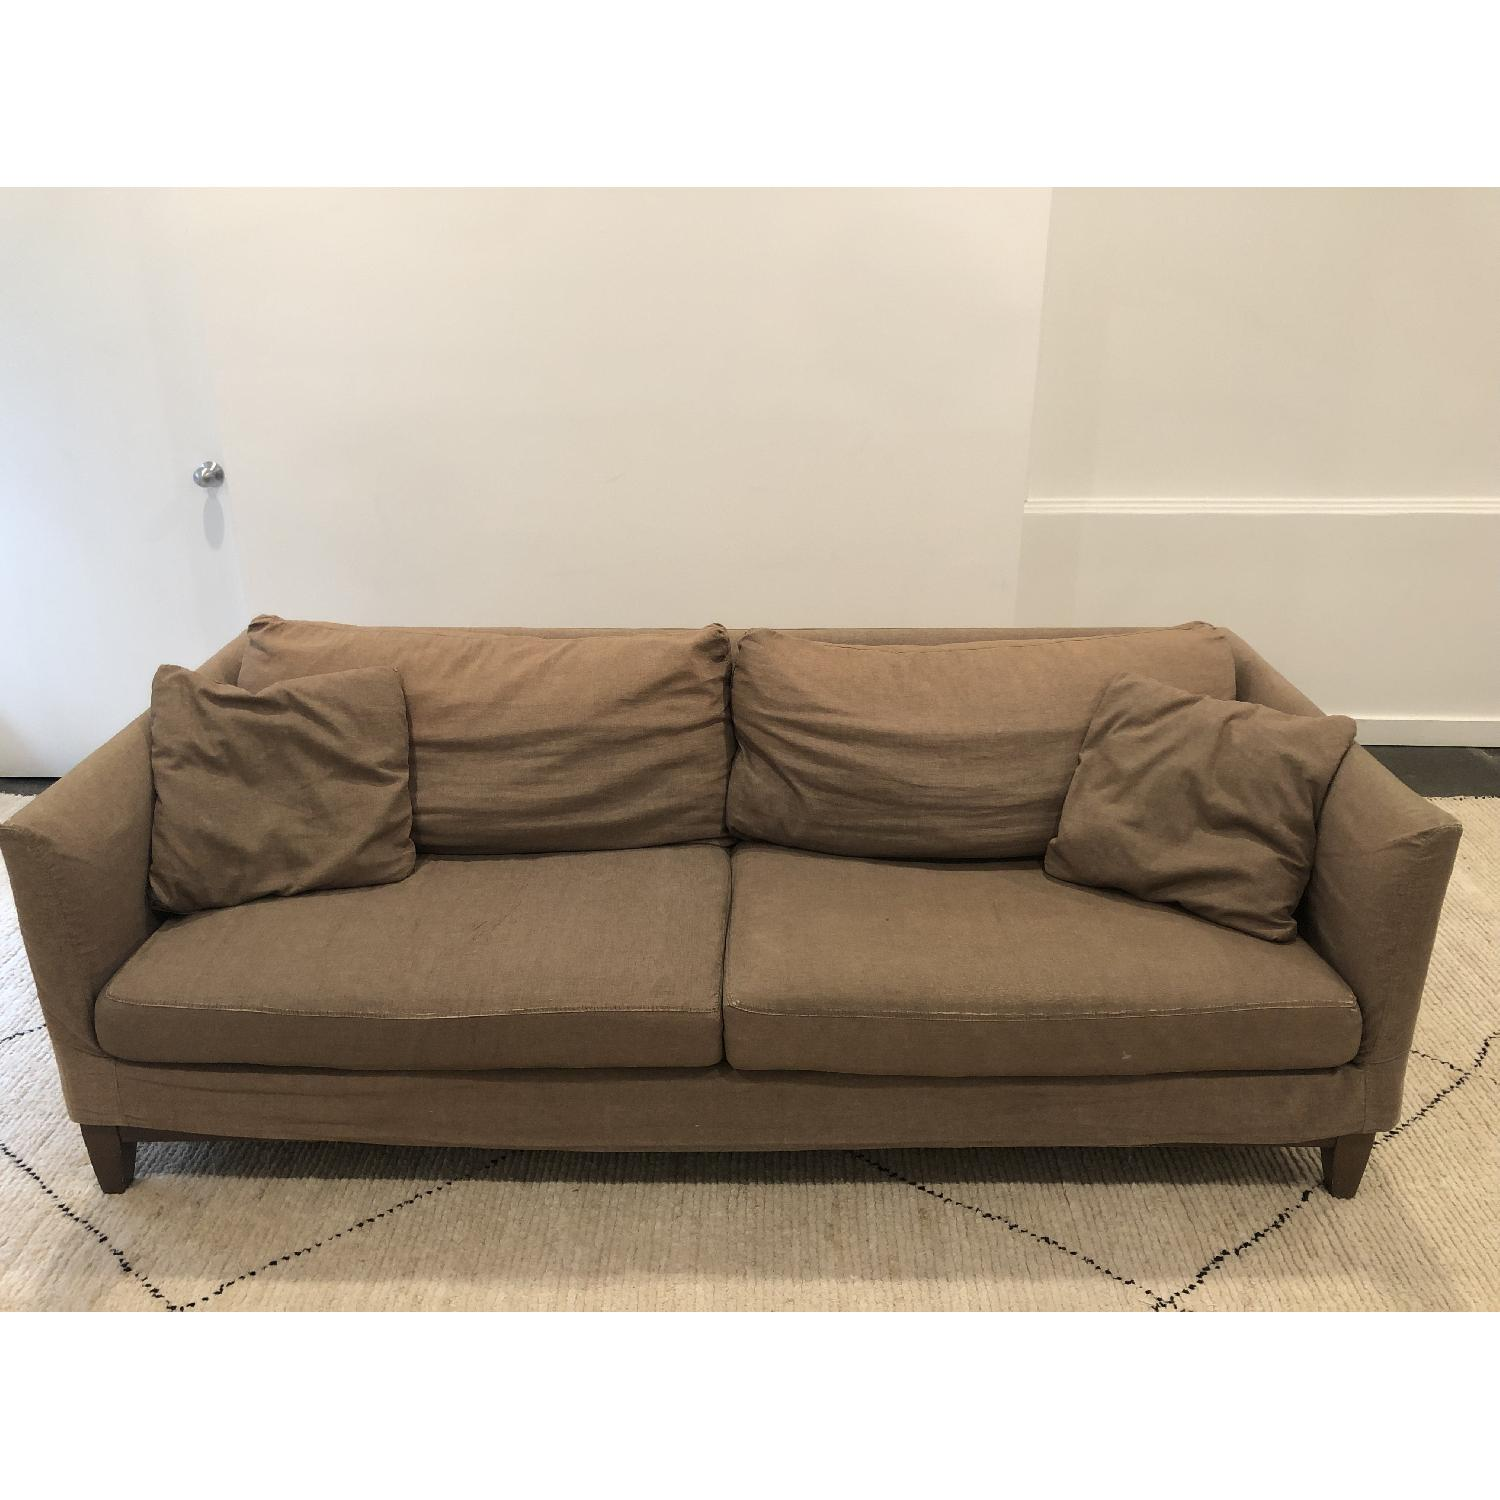 ABC Carpet & Home Two Seater Sofa